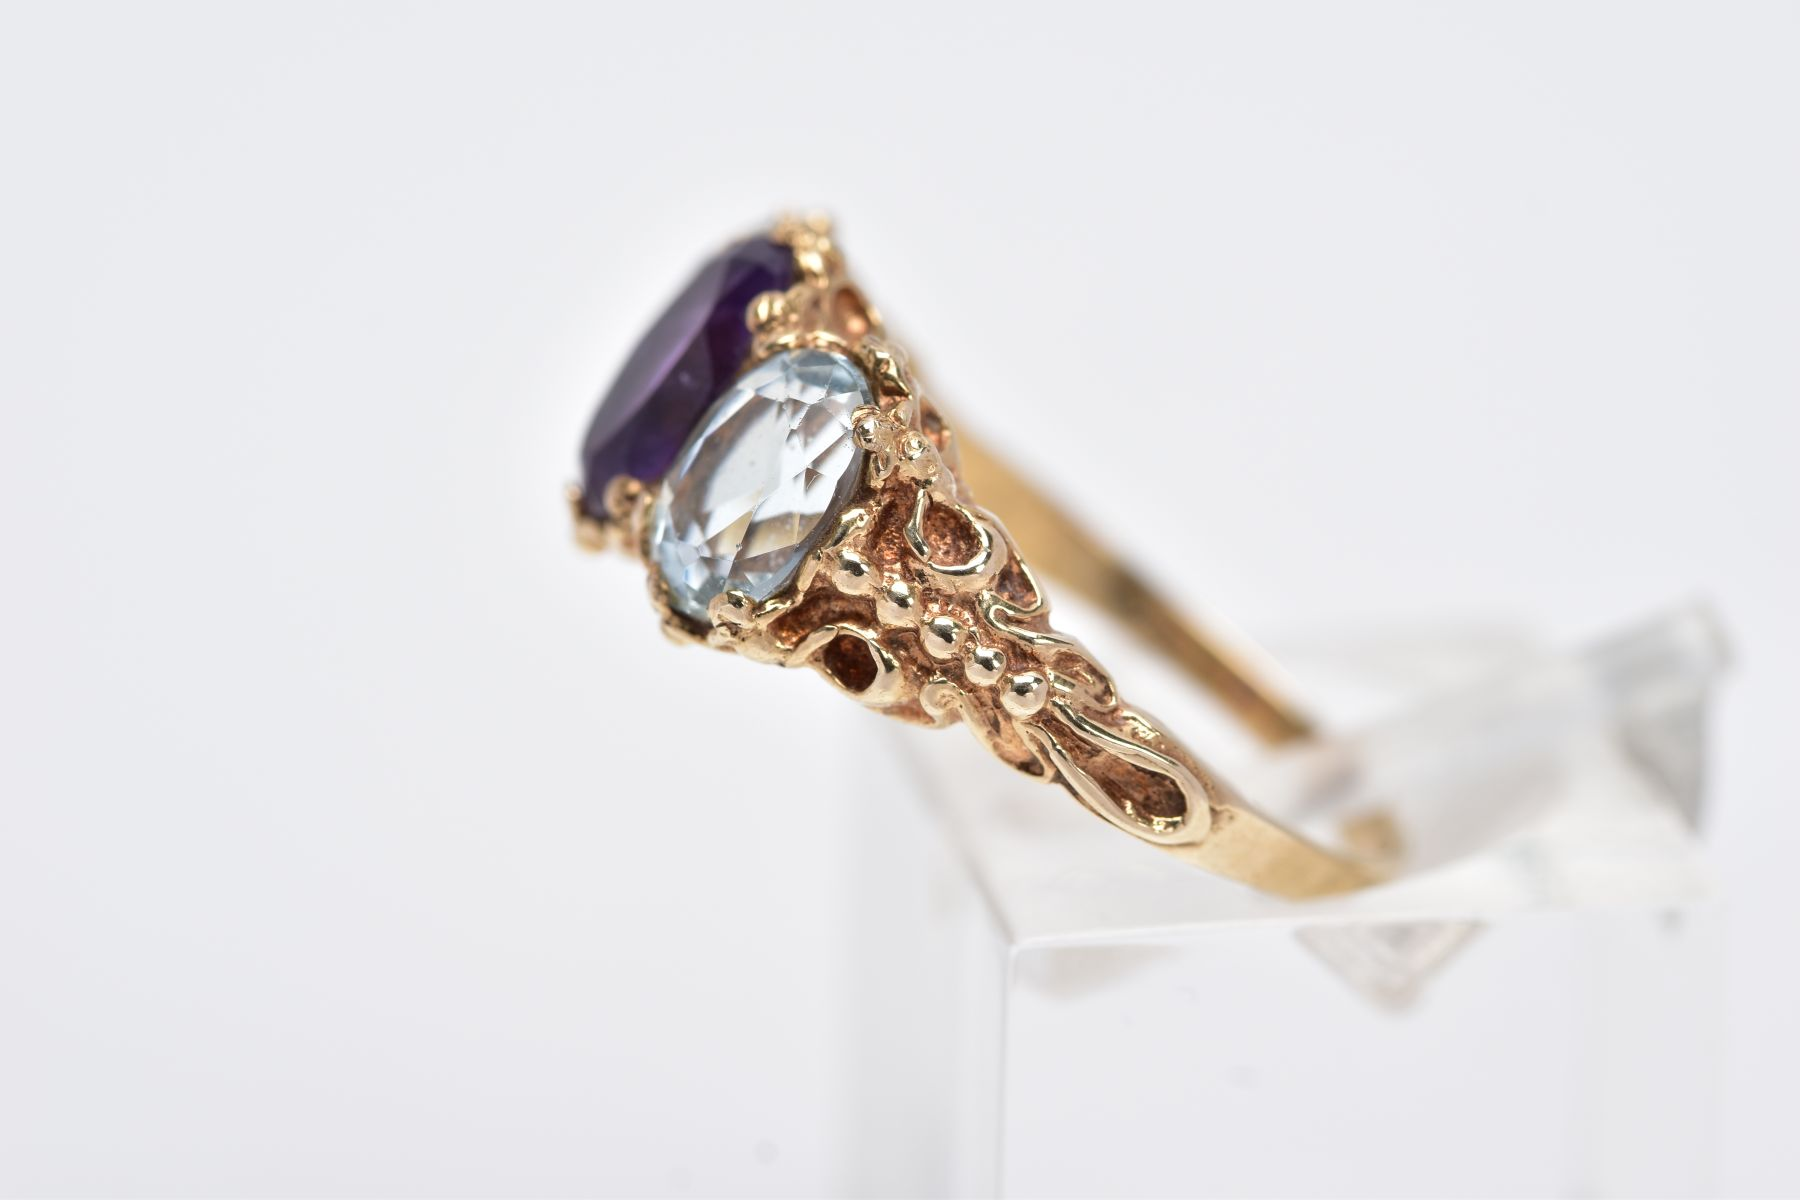 A 9CT GOLD THREE STONE RING, centring on an oval cut amethyst, flanked with two oval cut - Image 2 of 4